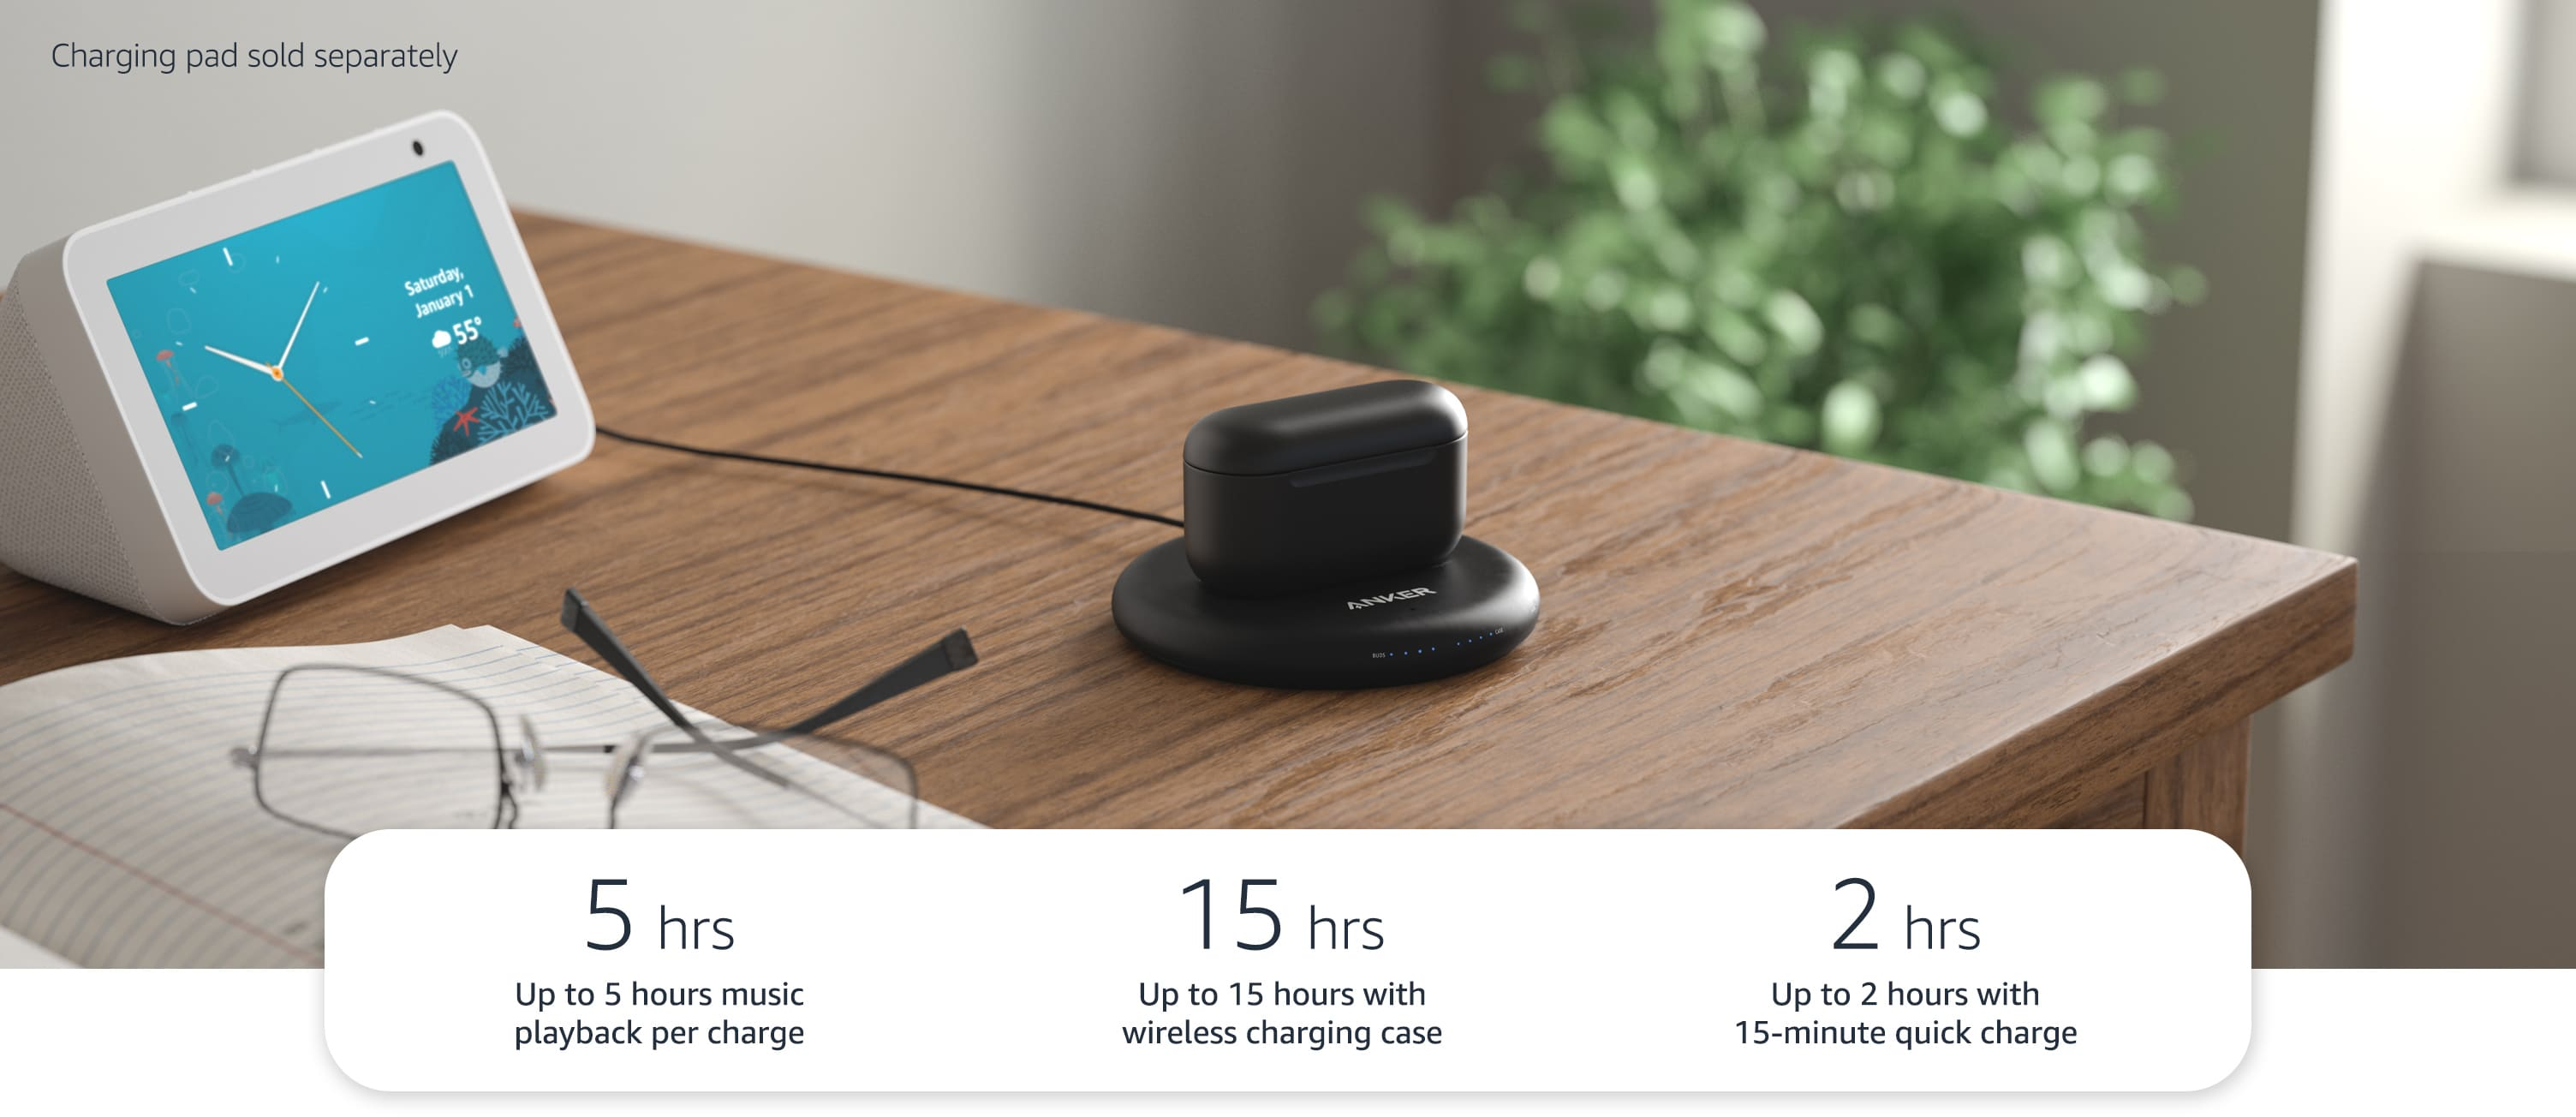 Up to 5 hours music playback per charge